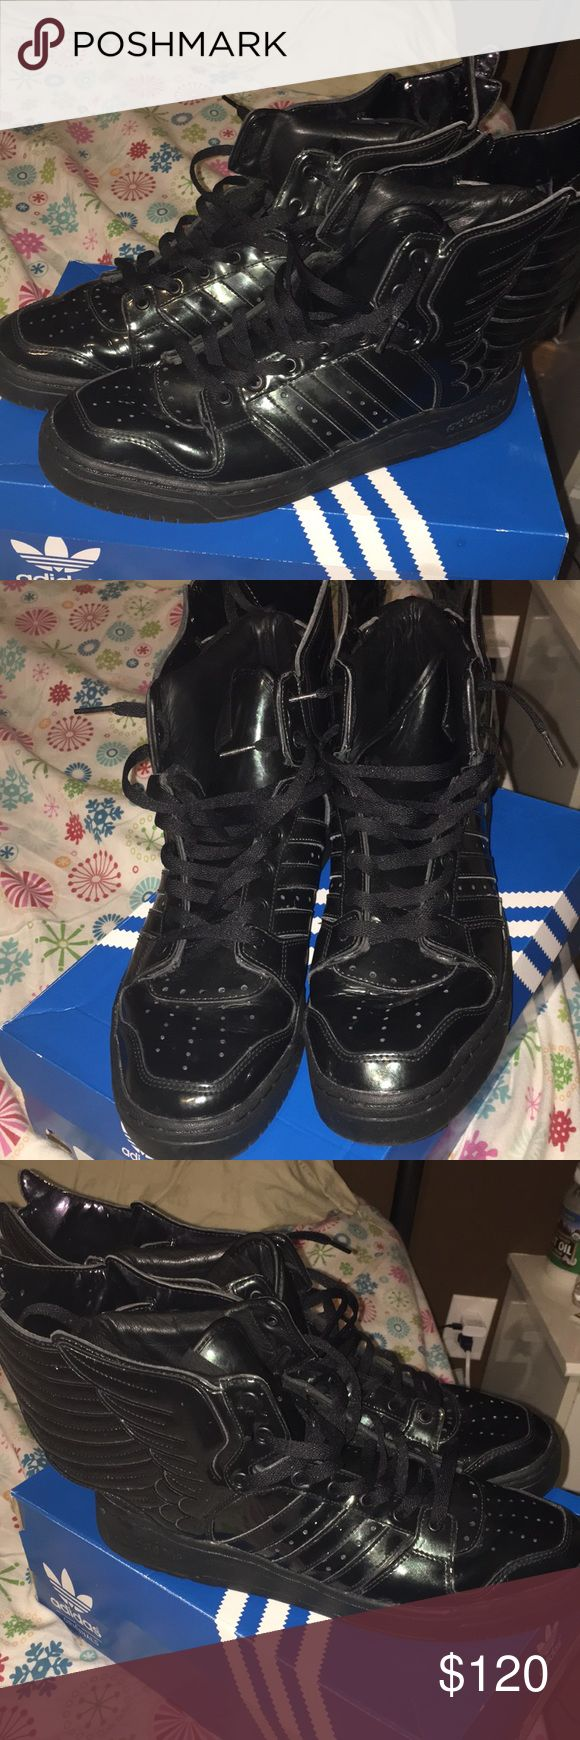 Jeremy Scott adidas black angel wing shoes ‼️MAKE AN OFFER‼️  Bought these for my boyfriend but they were too small. A few light signs of wear as seen in the pictures. Size 11.5 Jeremy Scott x Adidas Shoes Sneakers